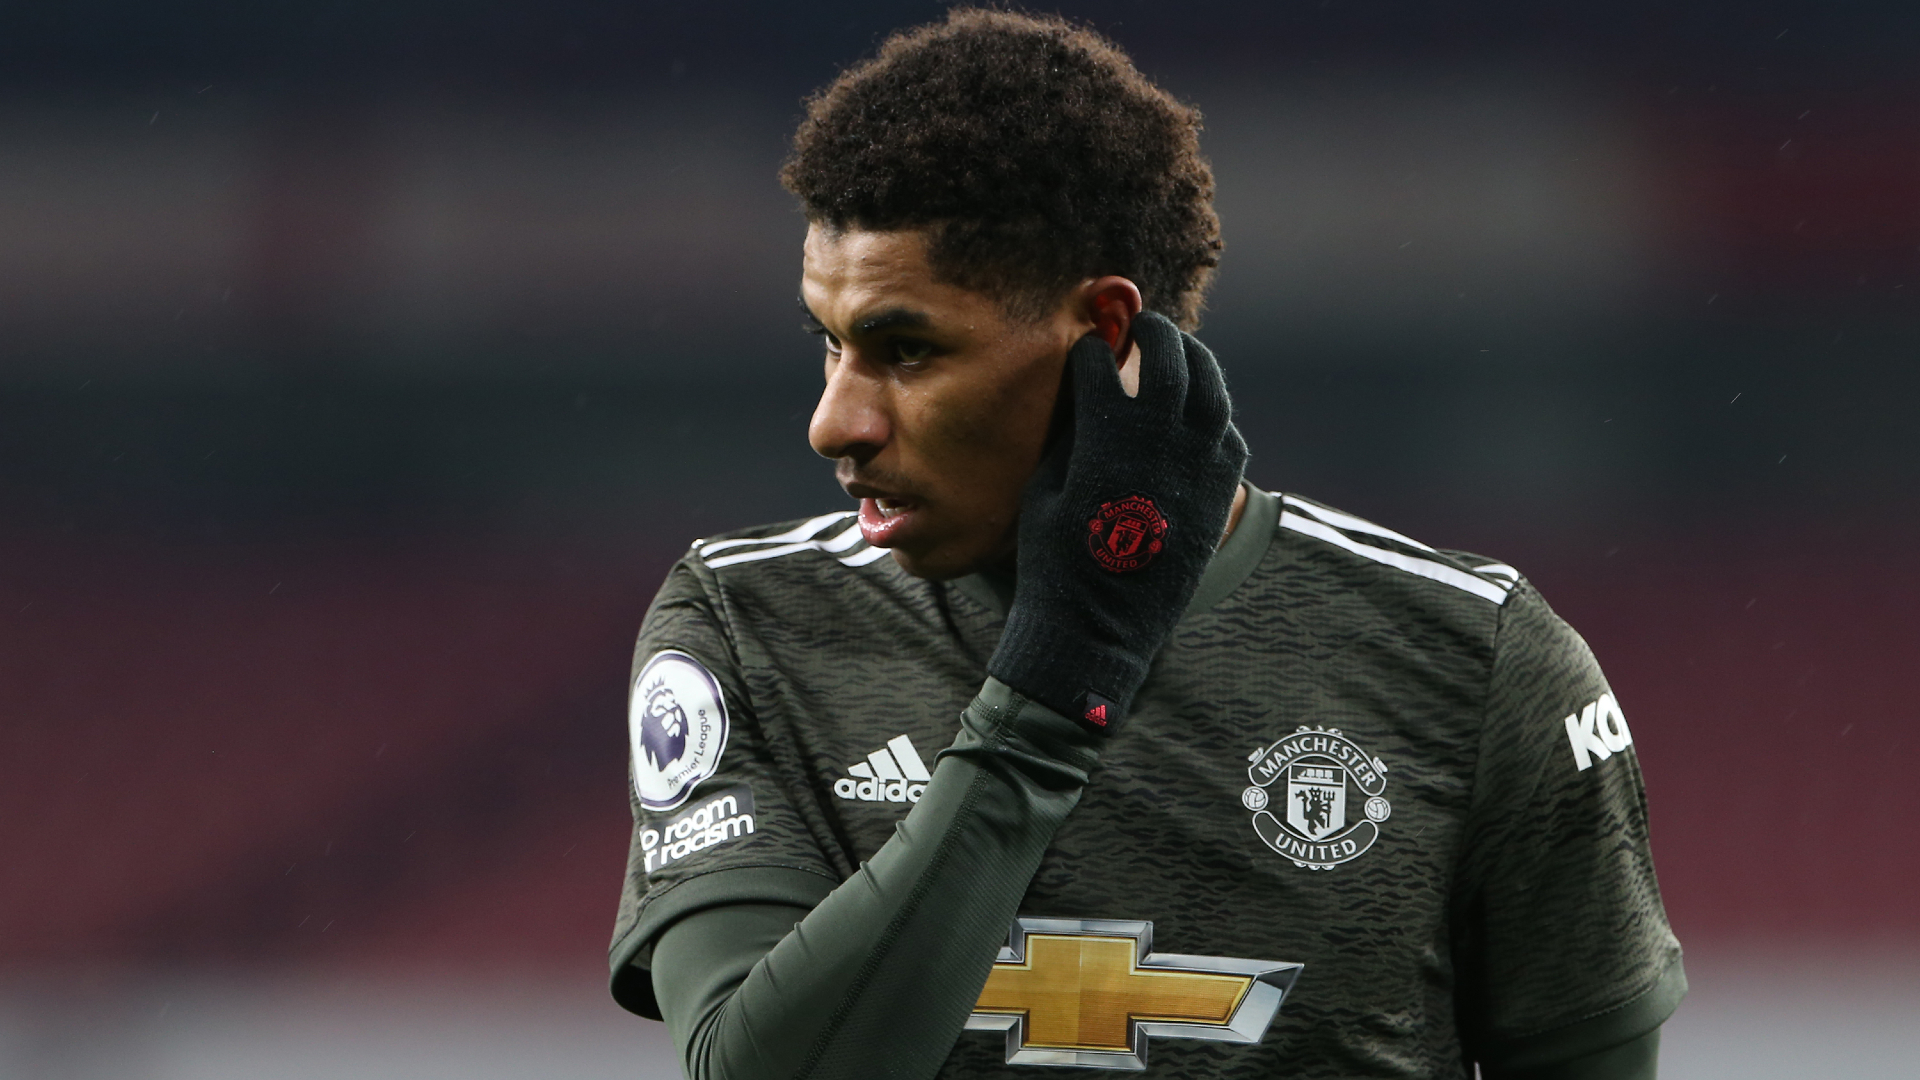 European Super League: Football is nothing without fans – Rashford quotes Busby in apparent protest